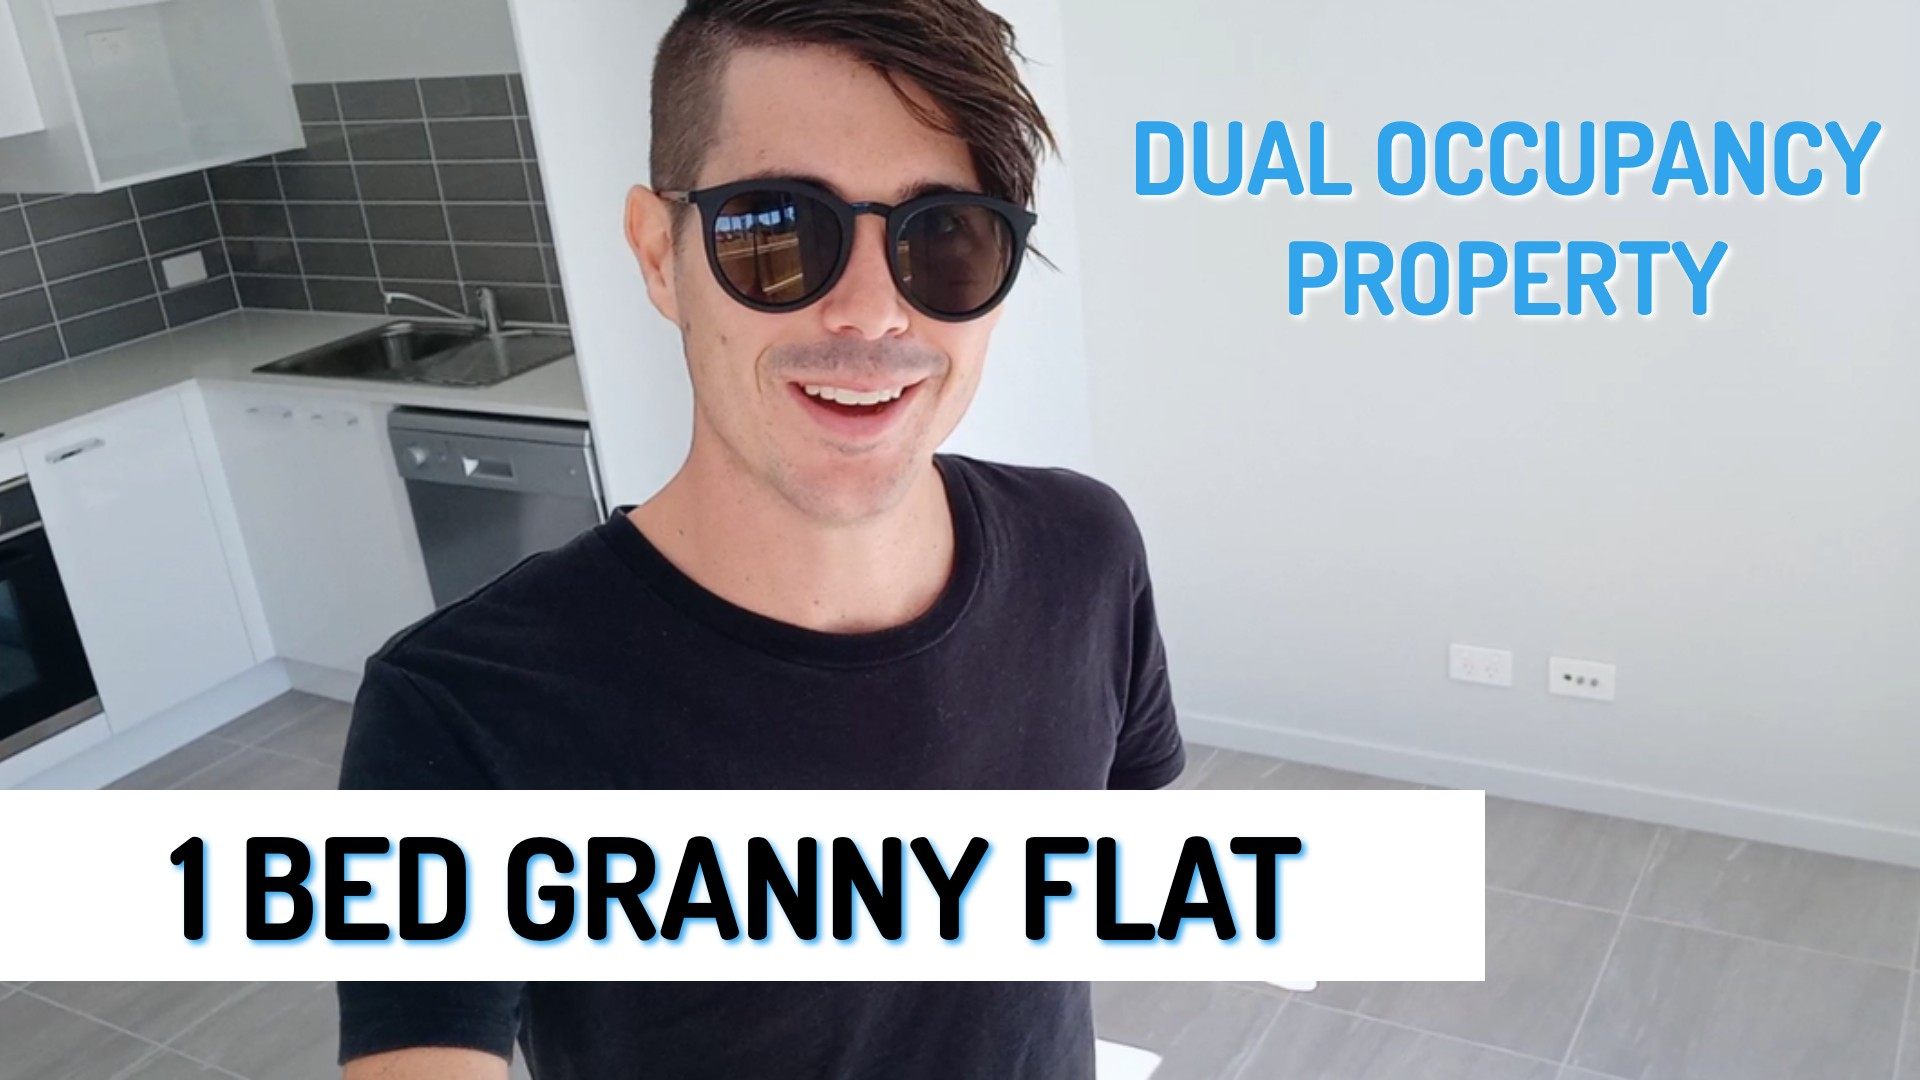 1-Bedroom Granny Flat Tour - Dual Occupancy Property